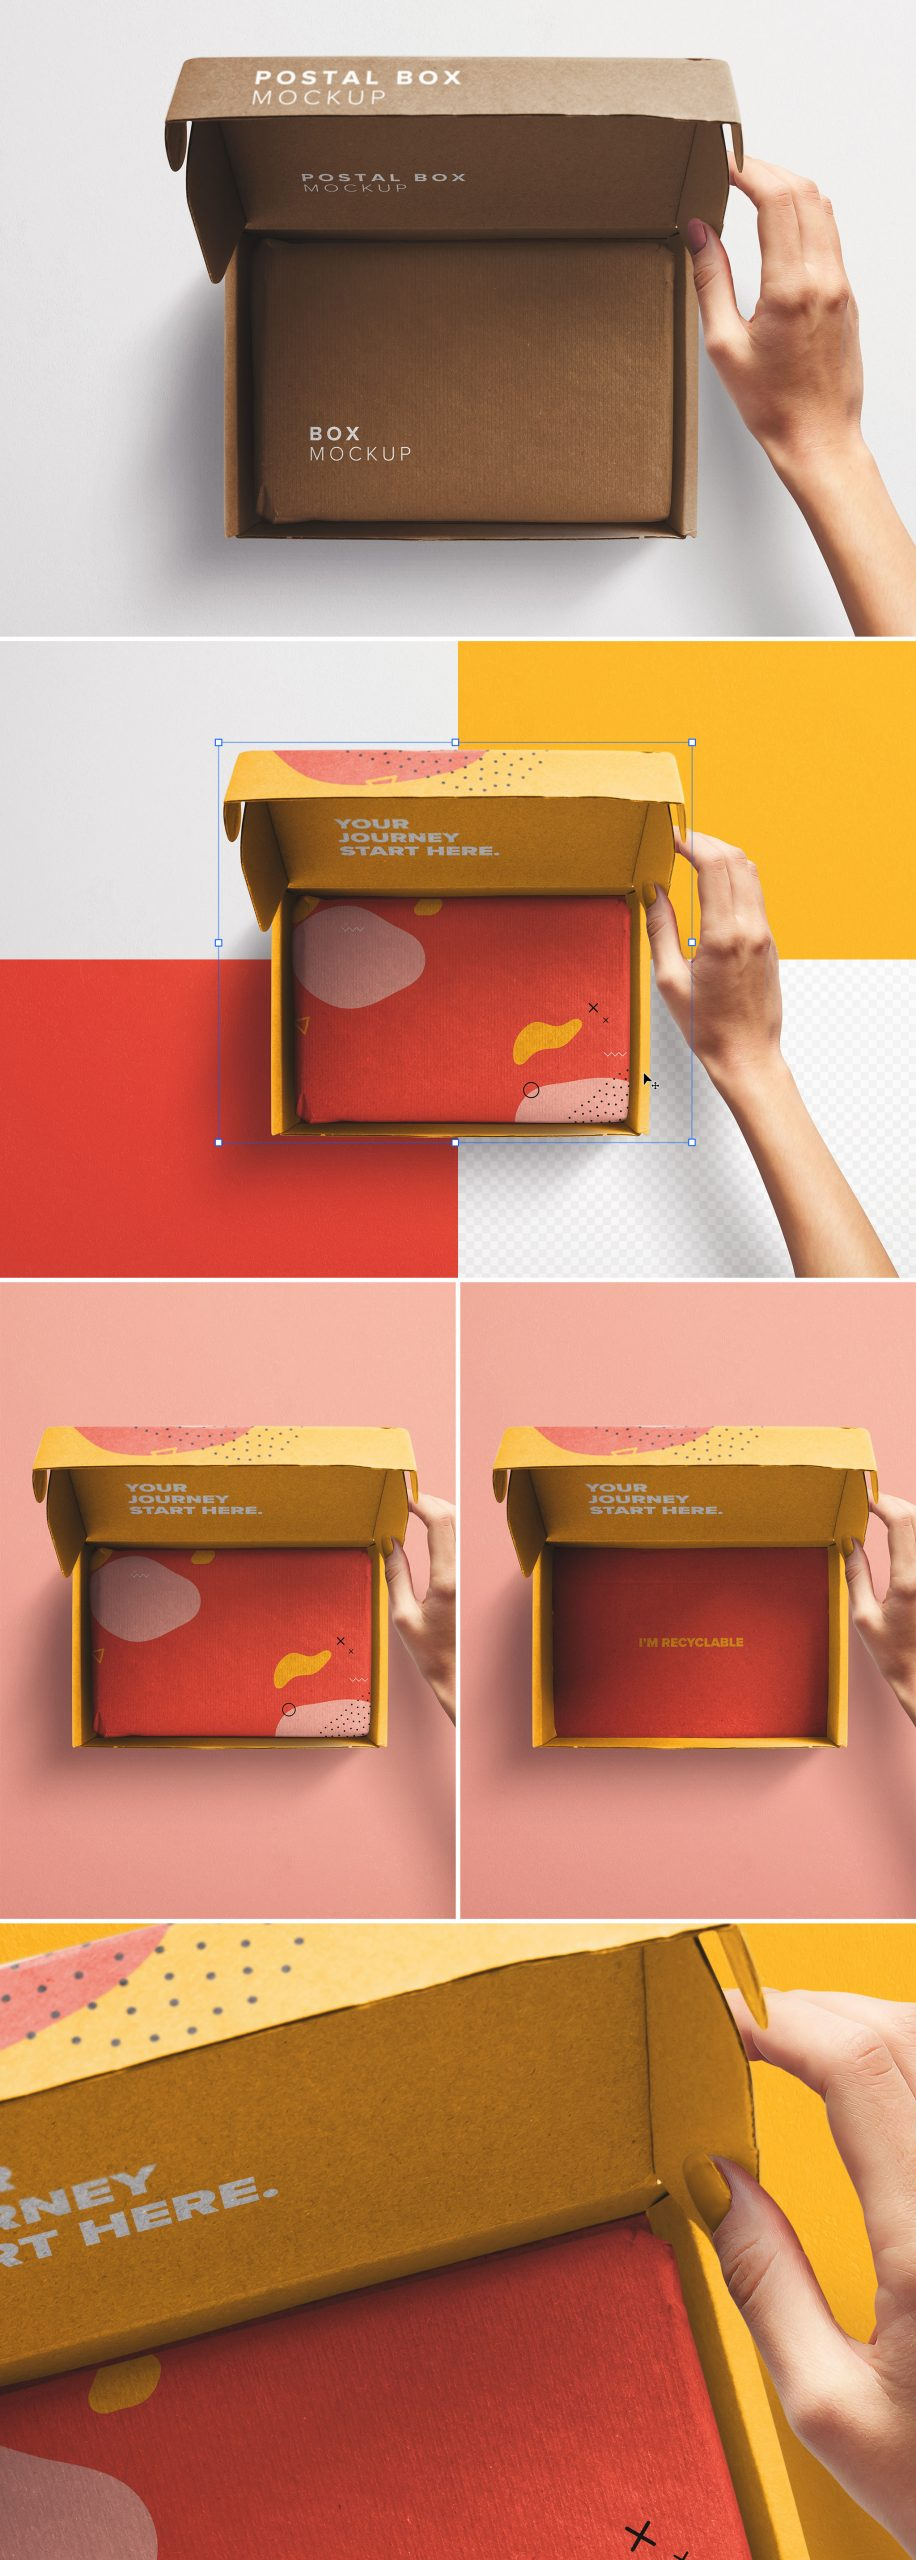 Hand Holding Opened Postal Box Lid Mockup preview scaled